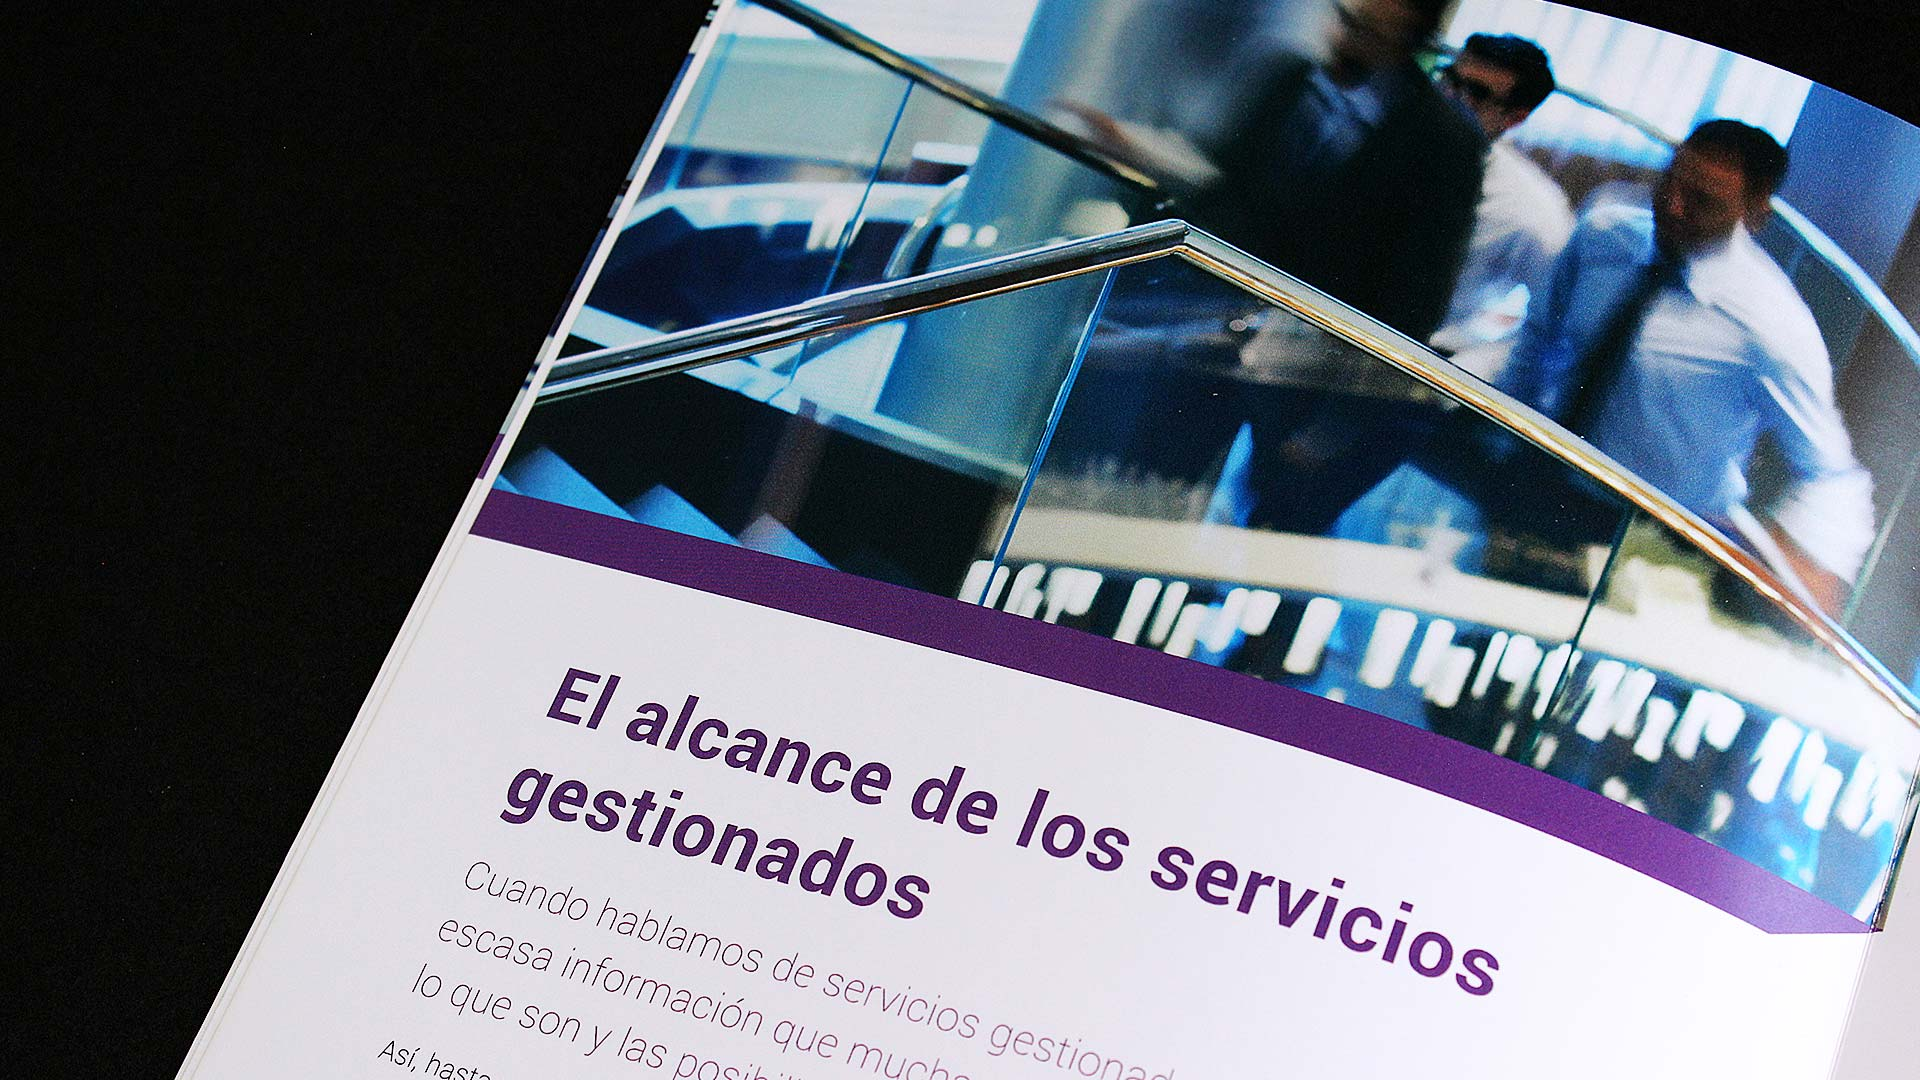 alcatel-content-marketing-informe-resumen-ejecutivo-networkondemand-ebook-2016-17